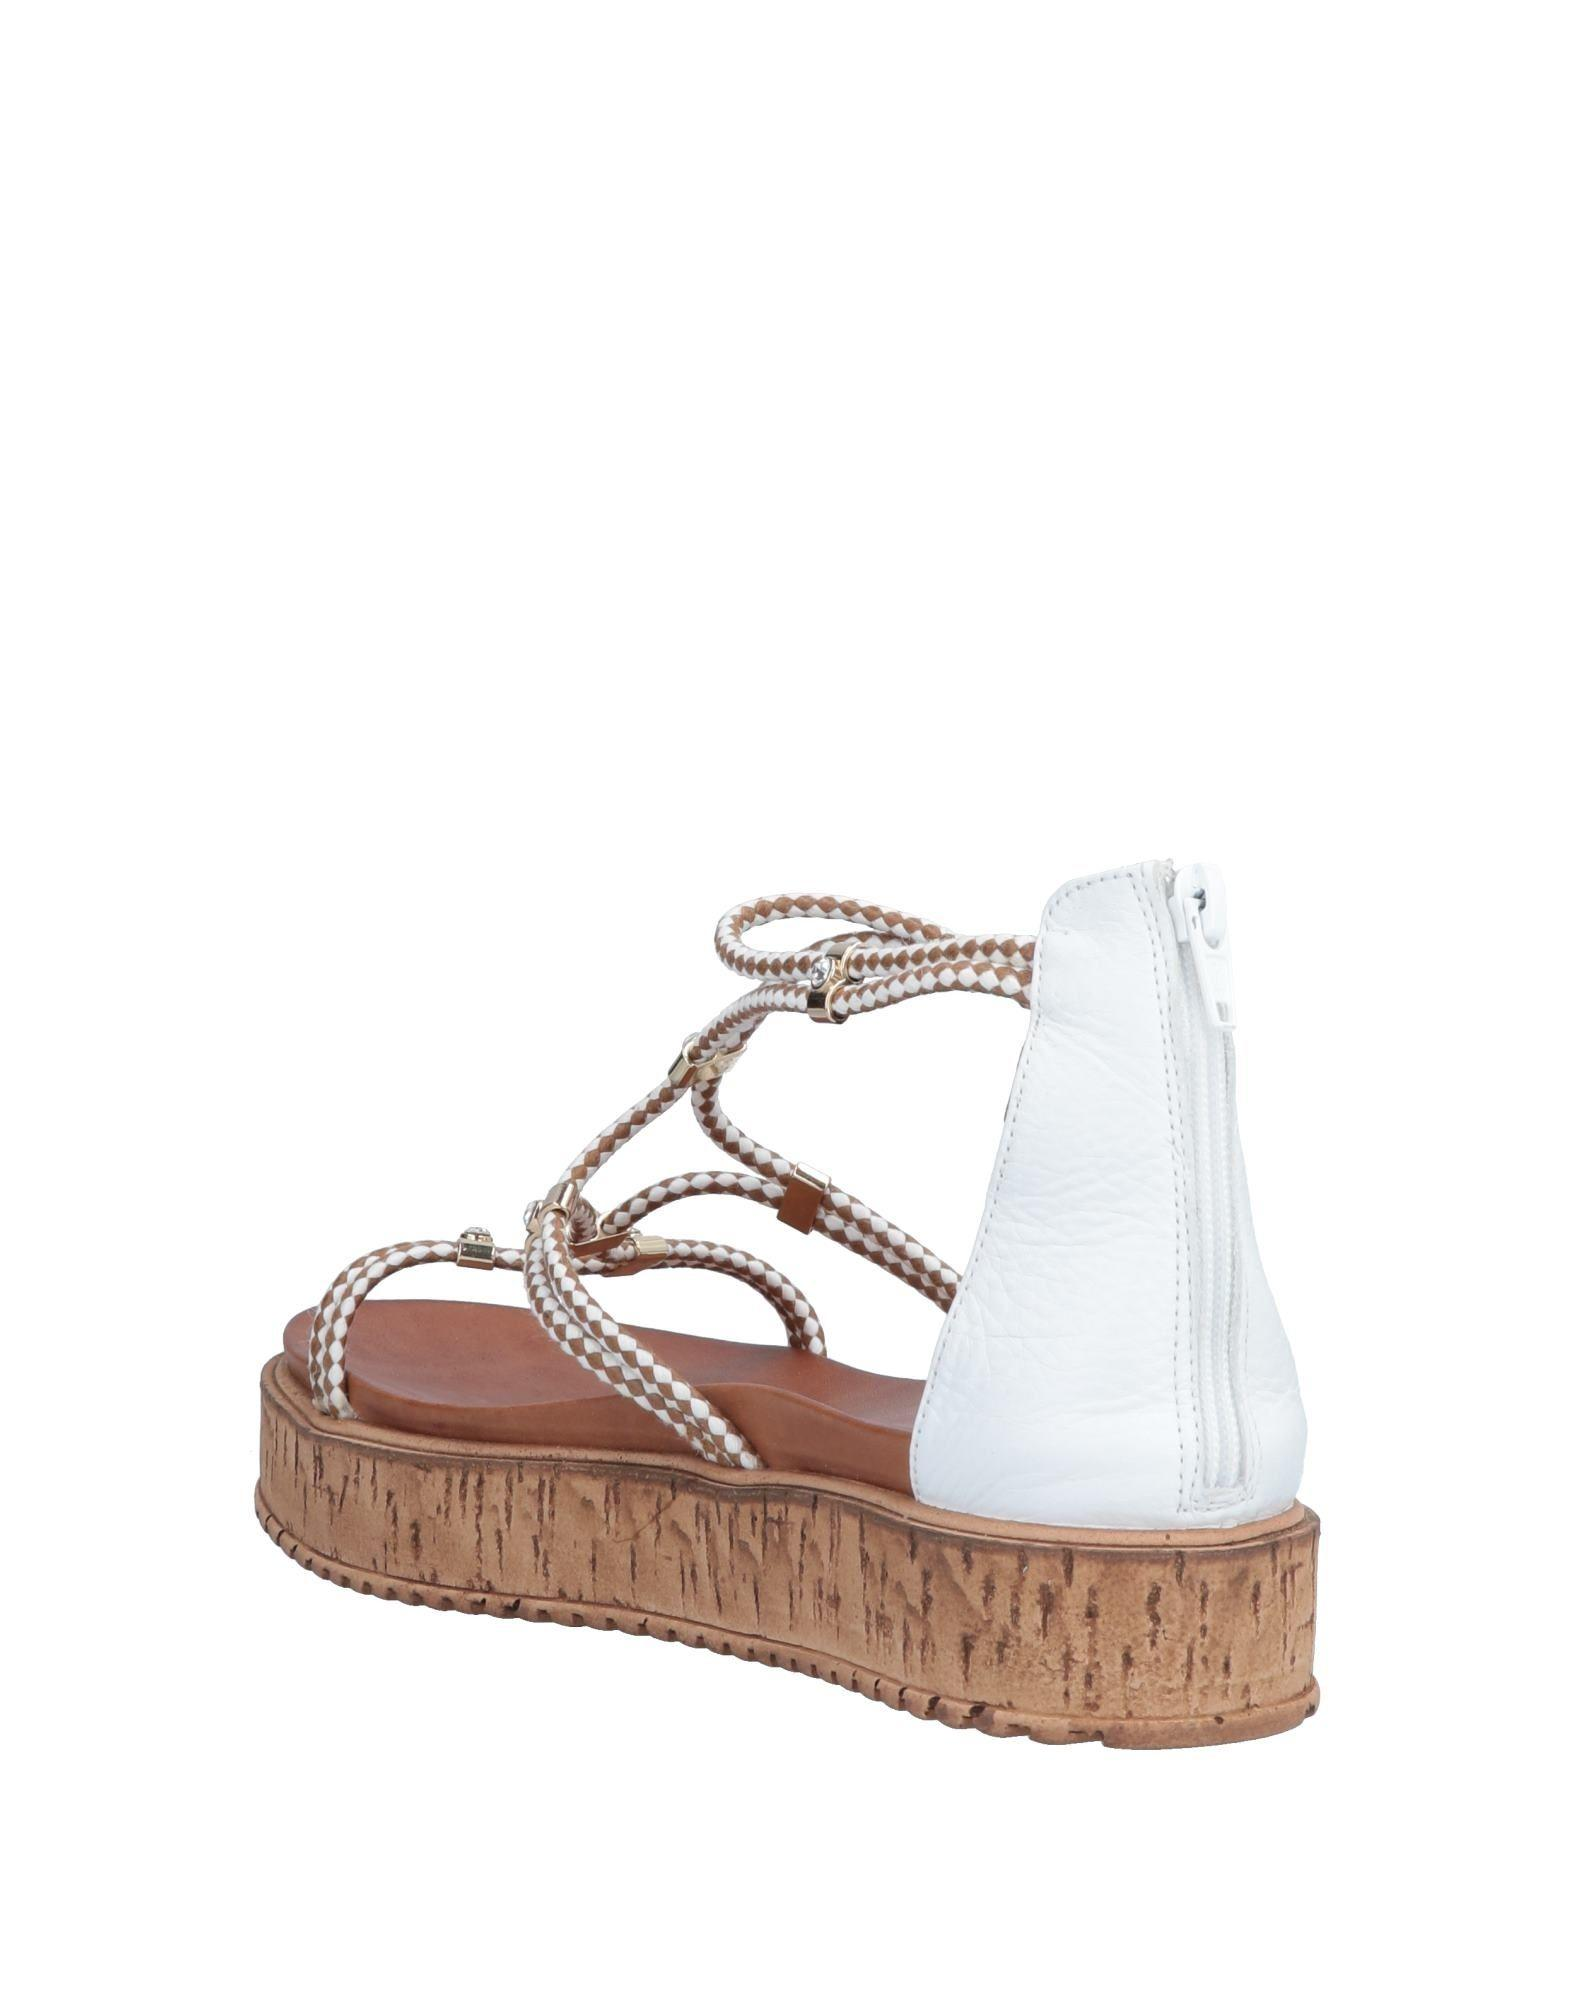 3a69b7bb833e Inuovo Sandals in White - Lyst